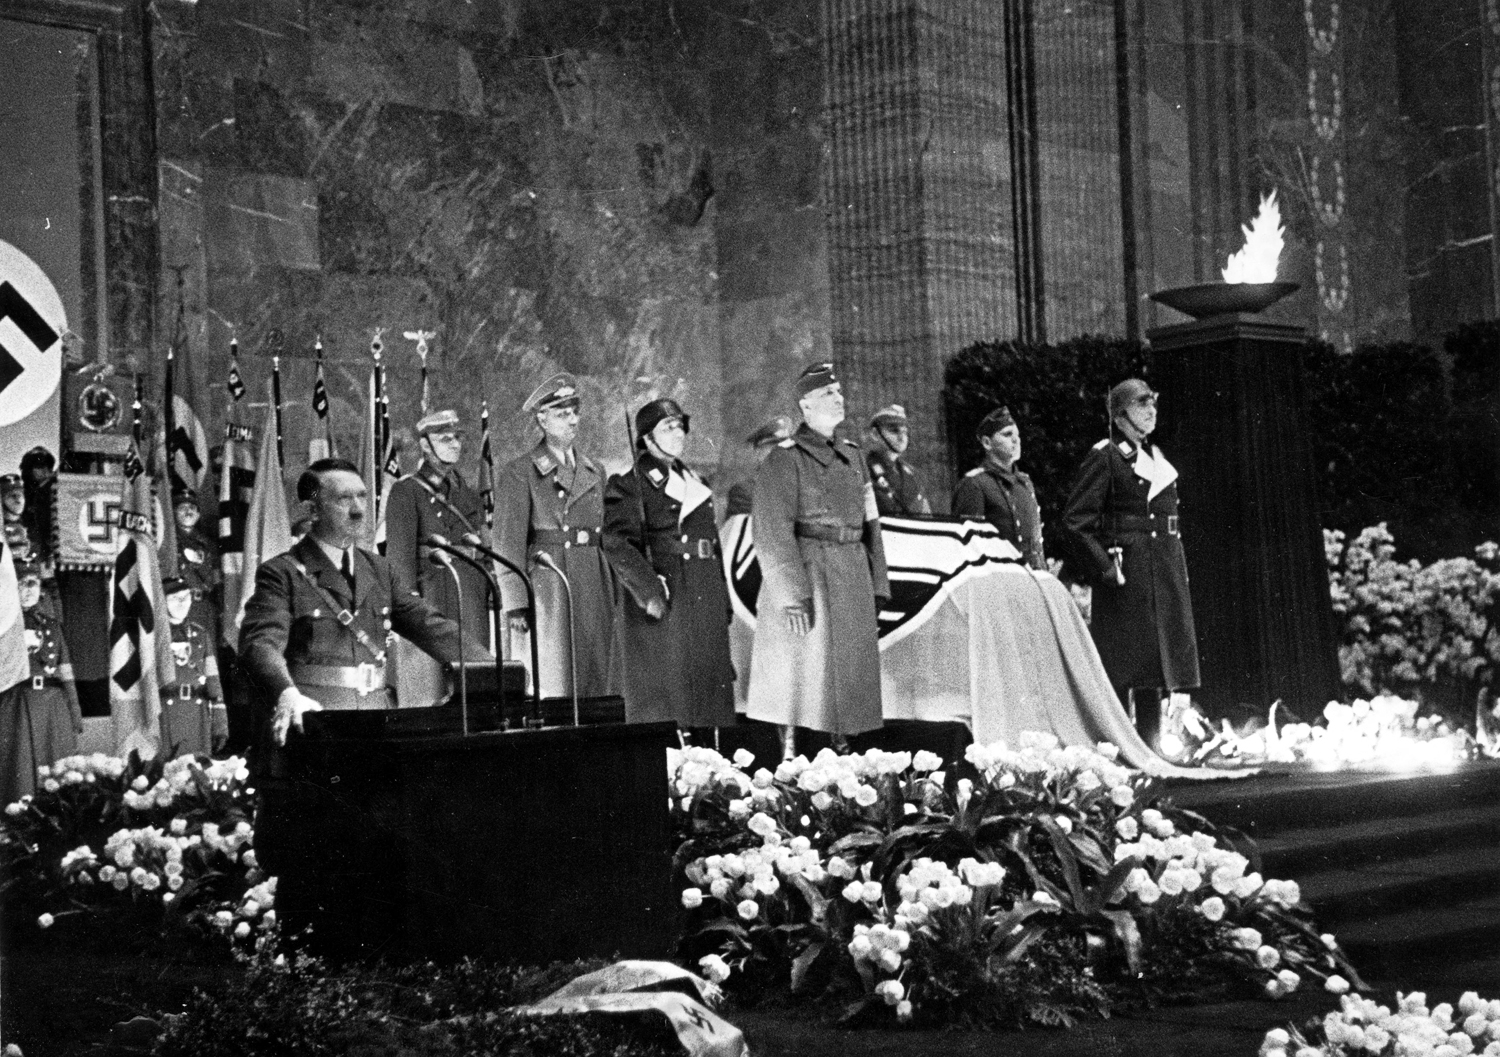 Adolf Hitler makes a speech during the funeral of Fritz Todt